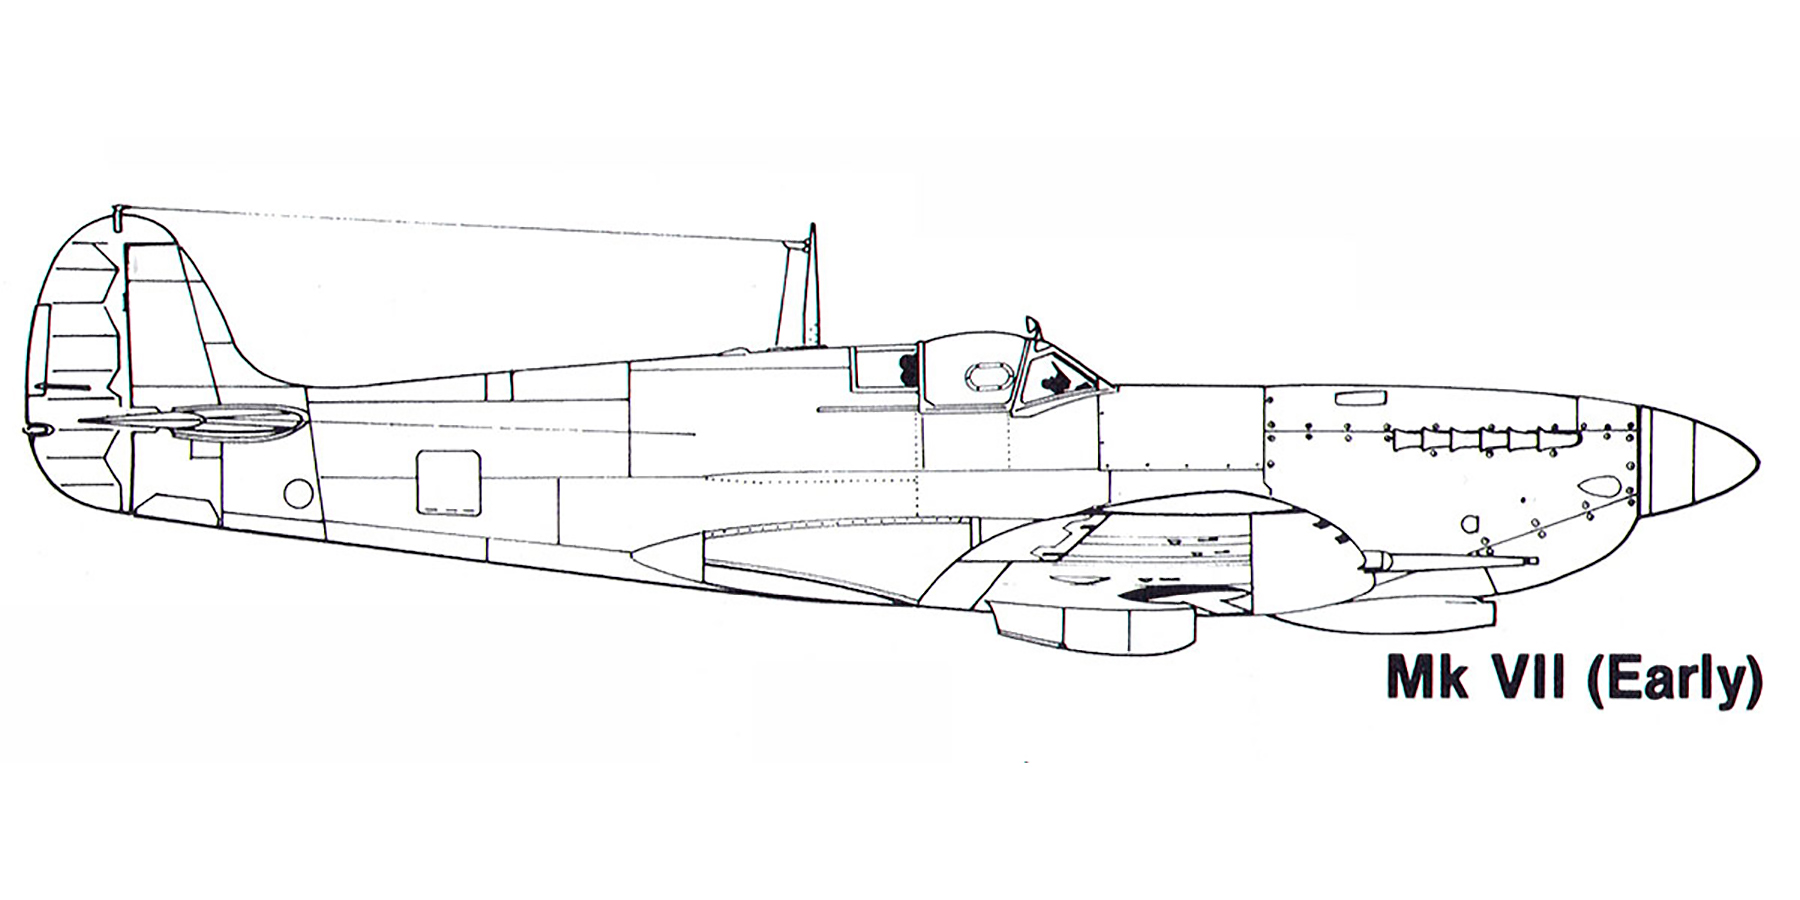 Aircraft profile Spitfire MkVII early blue print scale drawing 0A